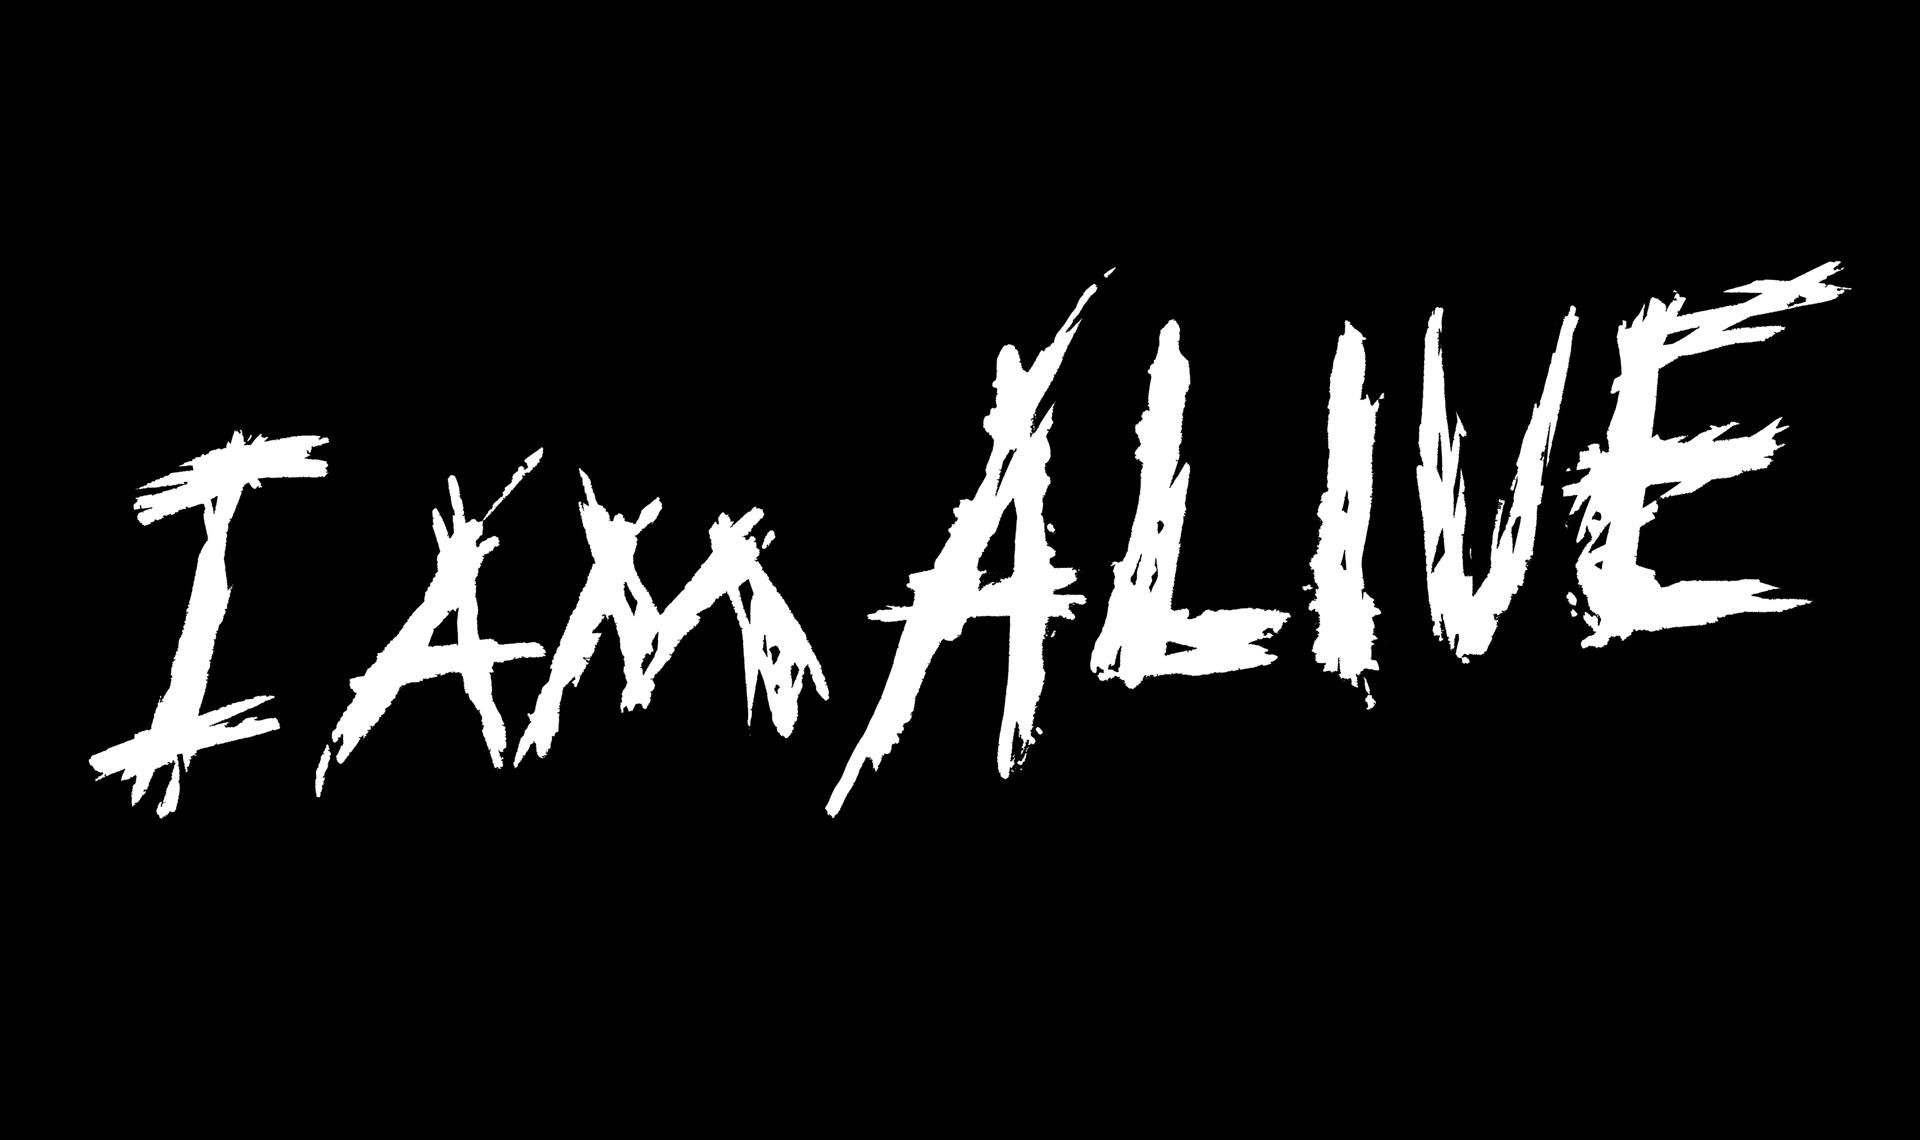 1920x1140 Ilovouby: Latest 12 I Am Alive HD Wallpapers Backgrounds Wallpaper ...